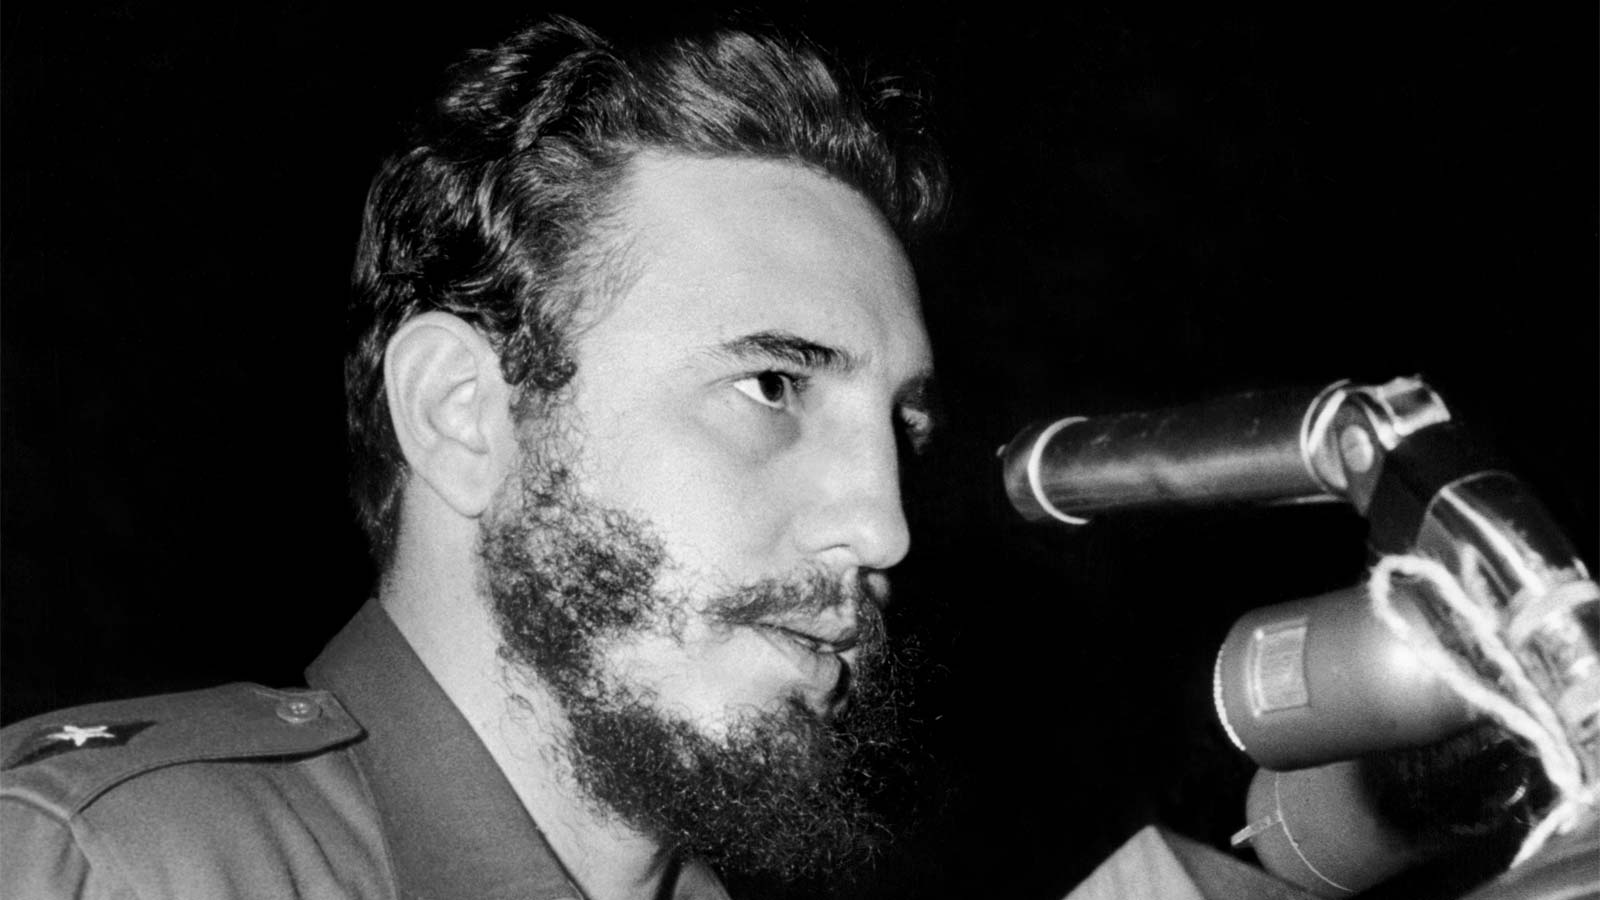 Fidel Castro addresses delegates of the General Assembly of the United Nations in a four-hour long speech, 26 September 1960